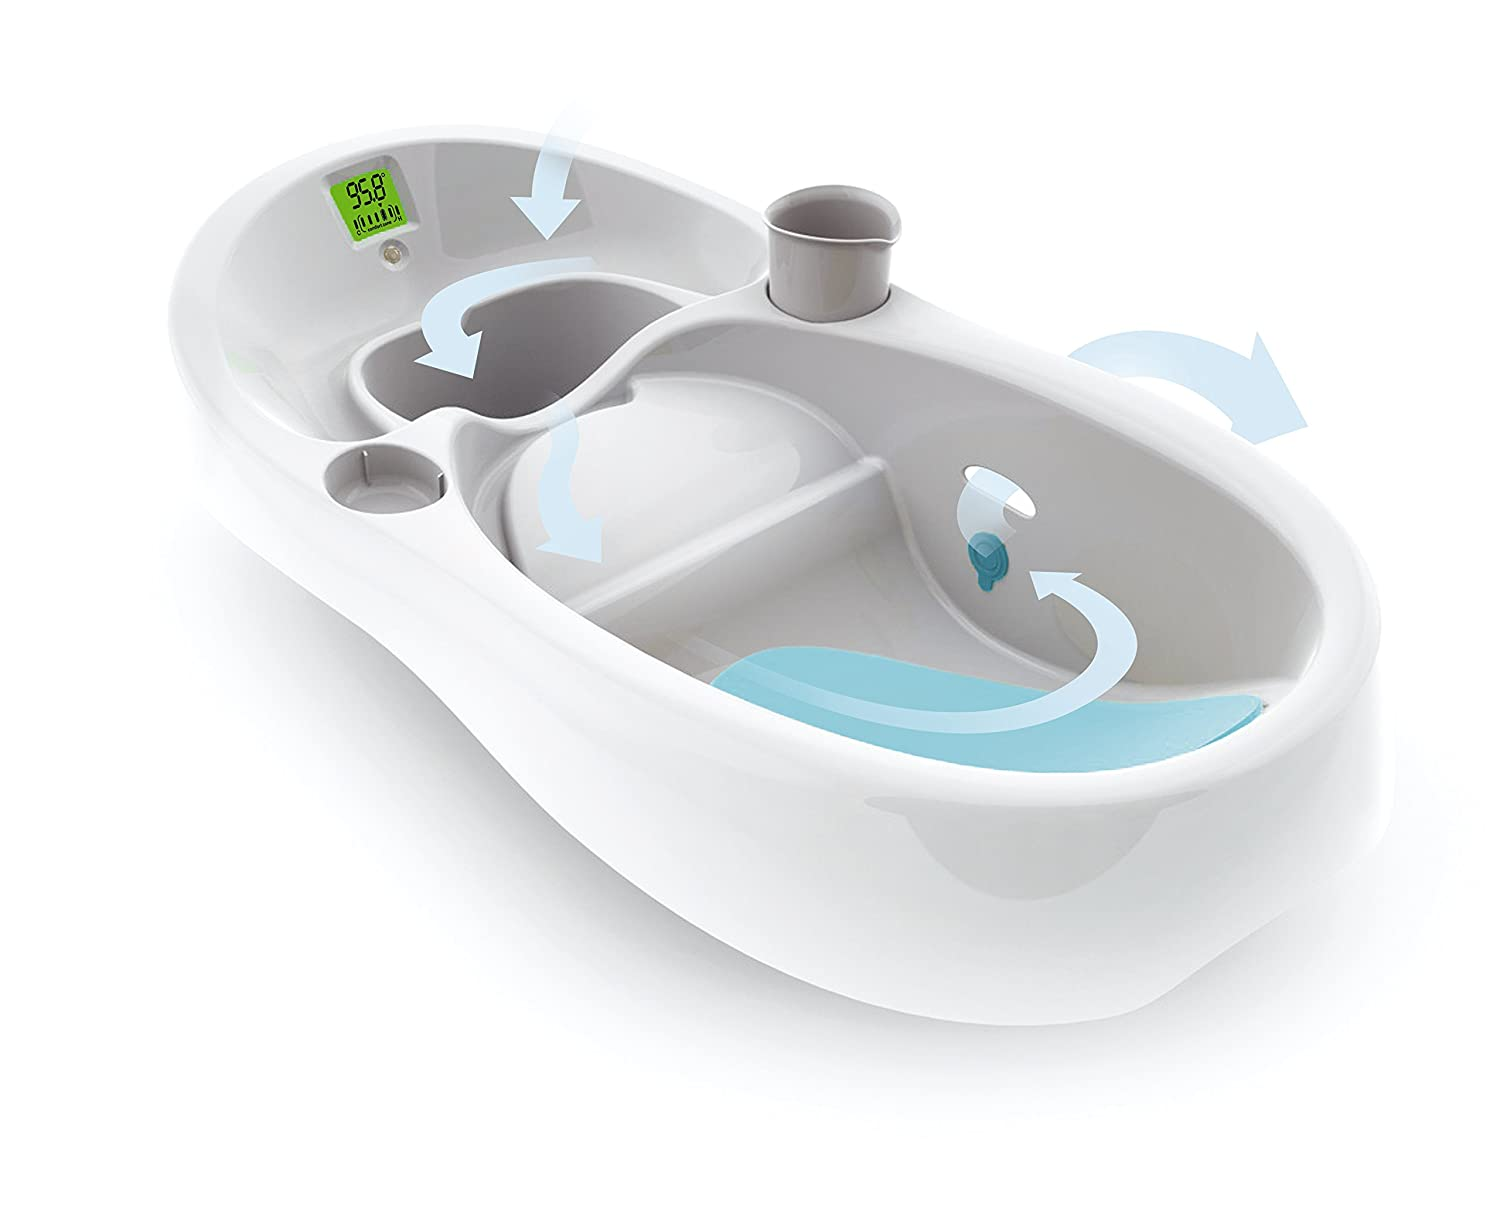 baby bath infant tub white digital thermometer single double sinks cup holder ebay. Black Bedroom Furniture Sets. Home Design Ideas